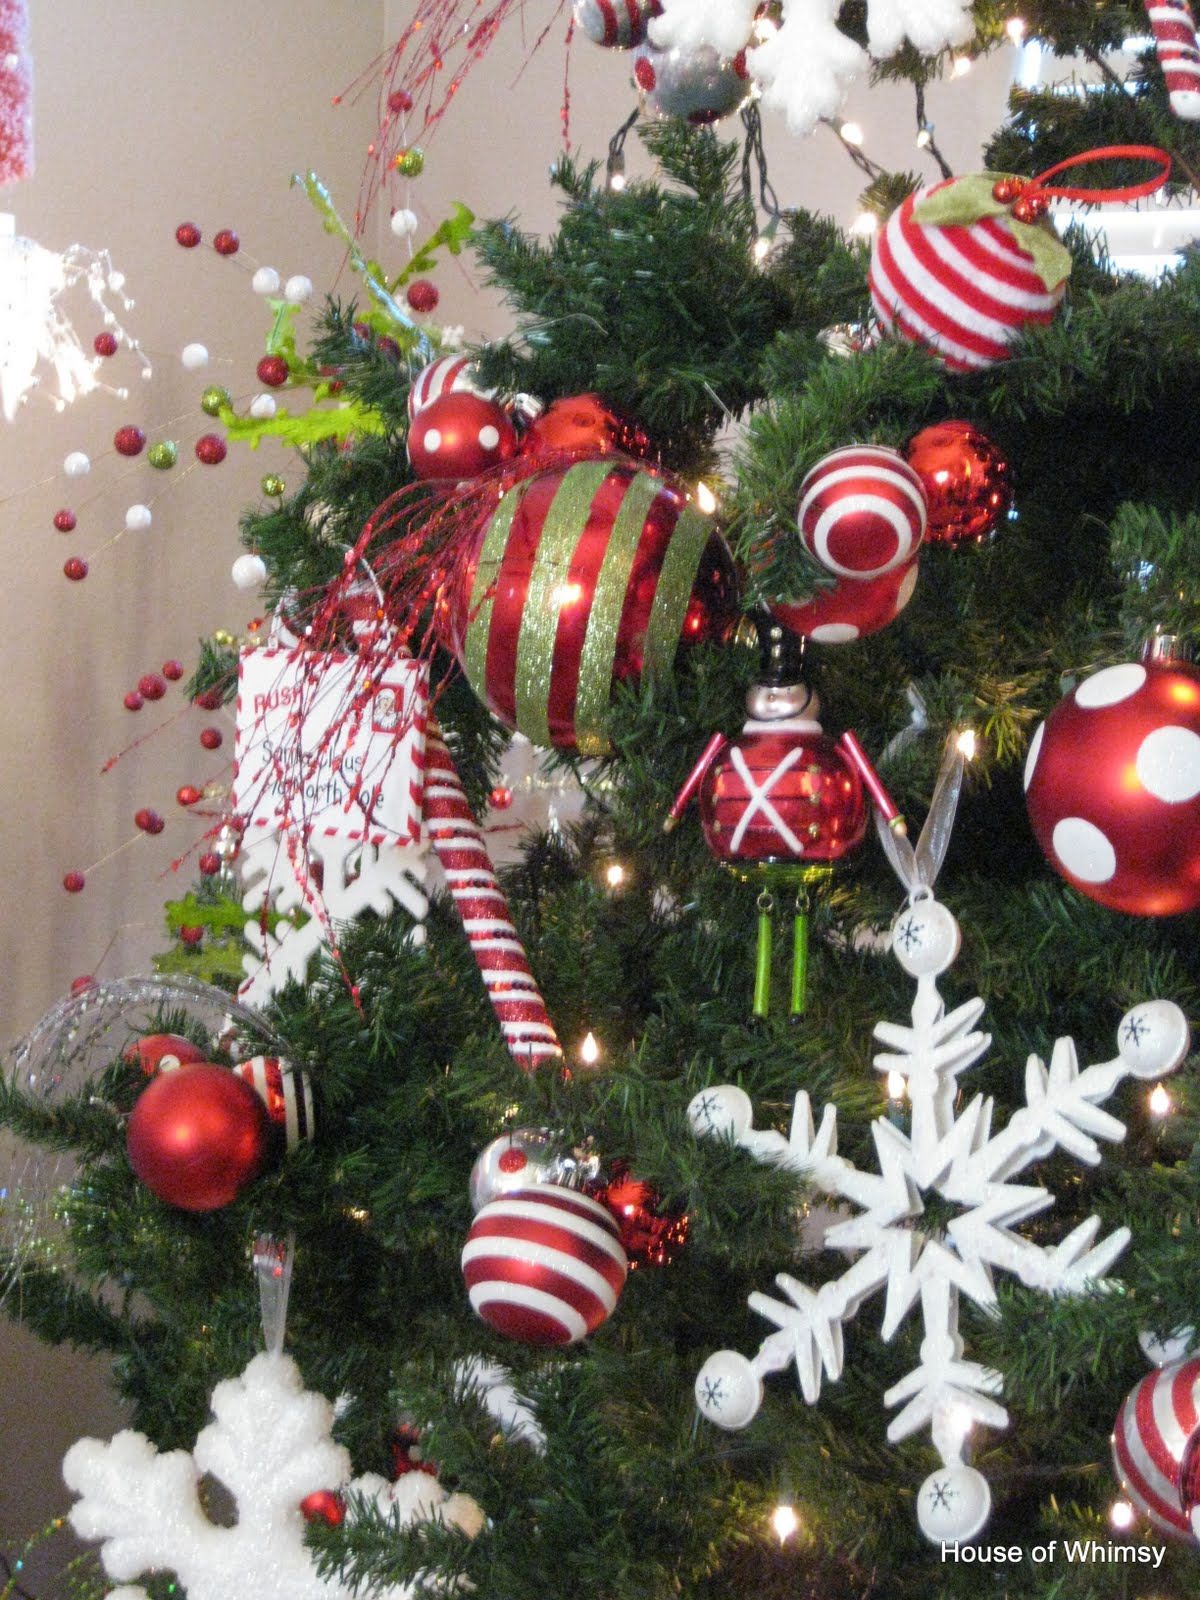 House Of Whimsy Whoville Tree Revisted